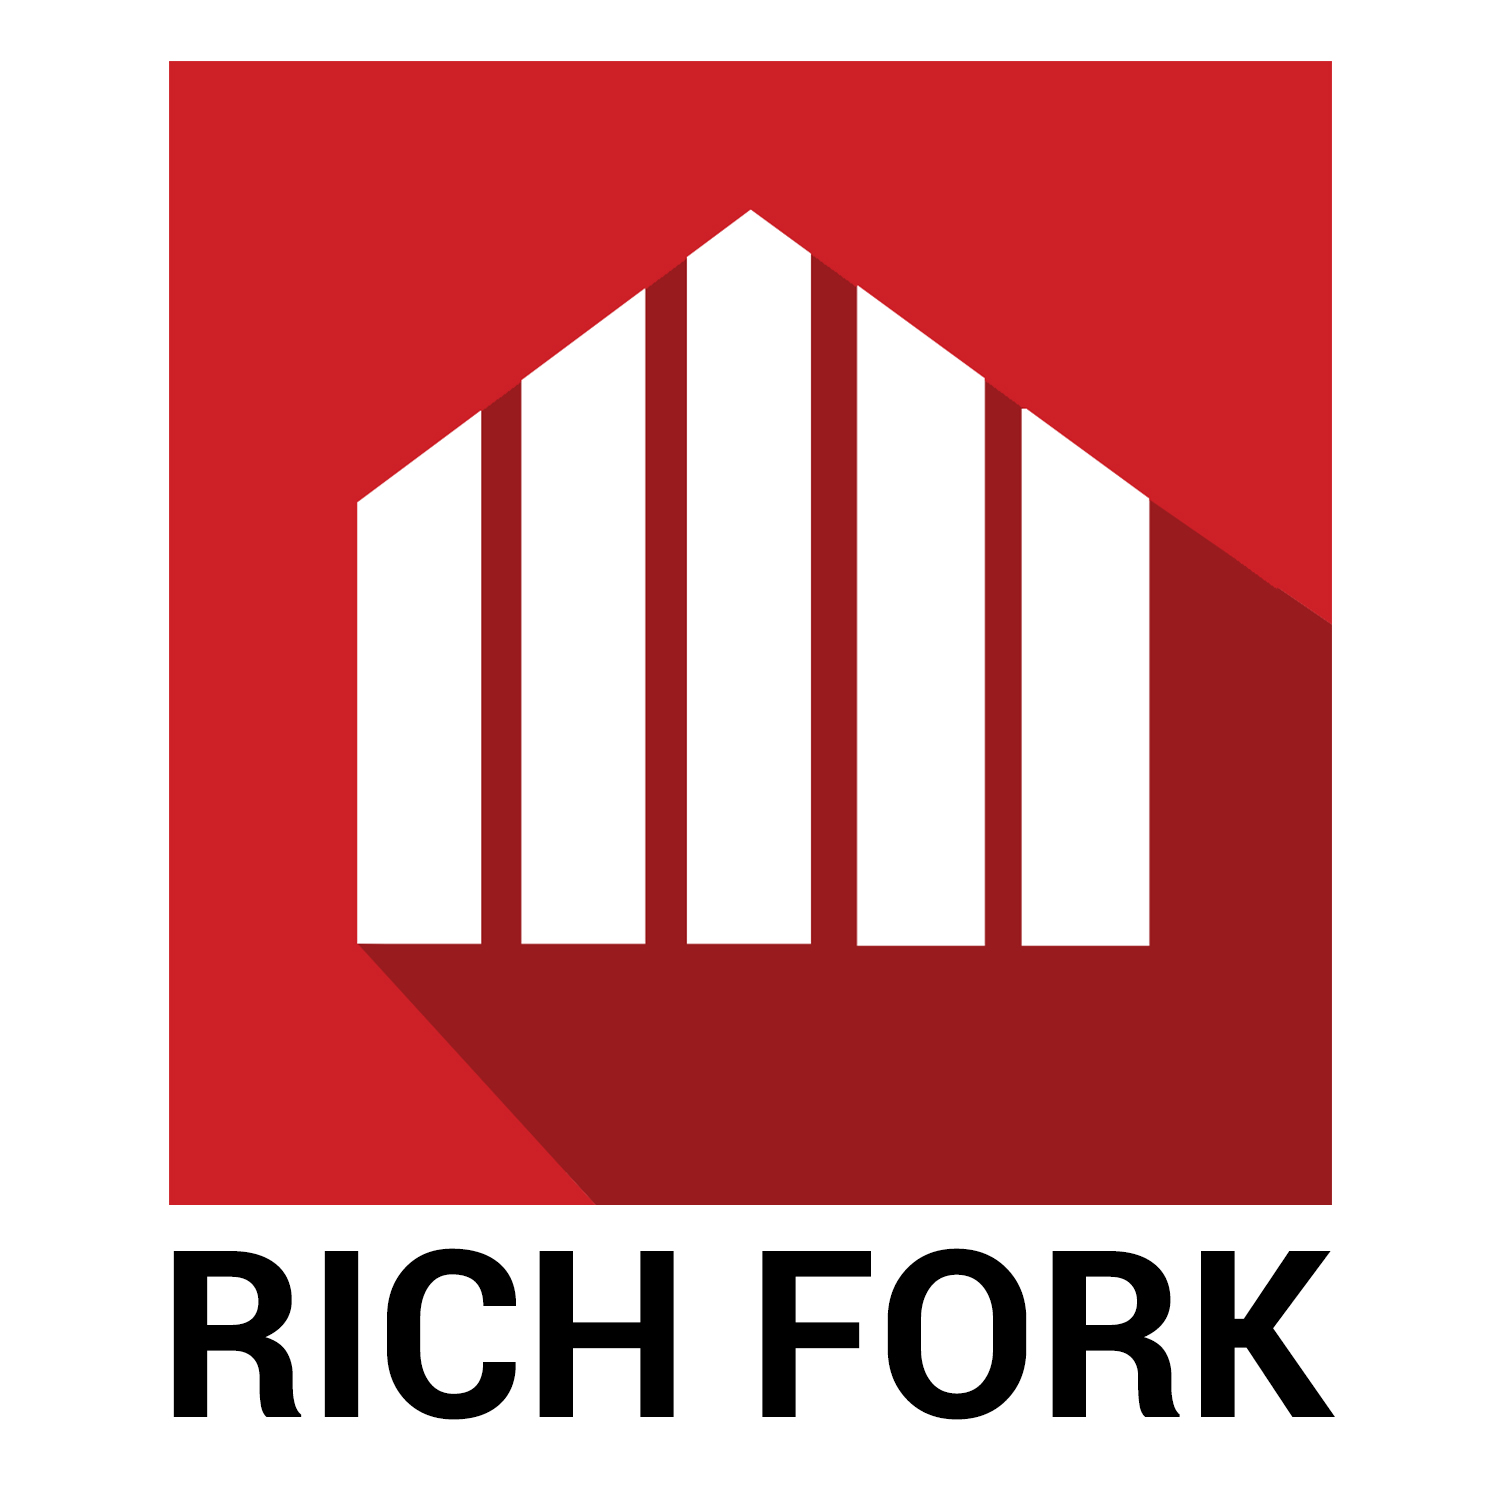 Richfork documentlogo